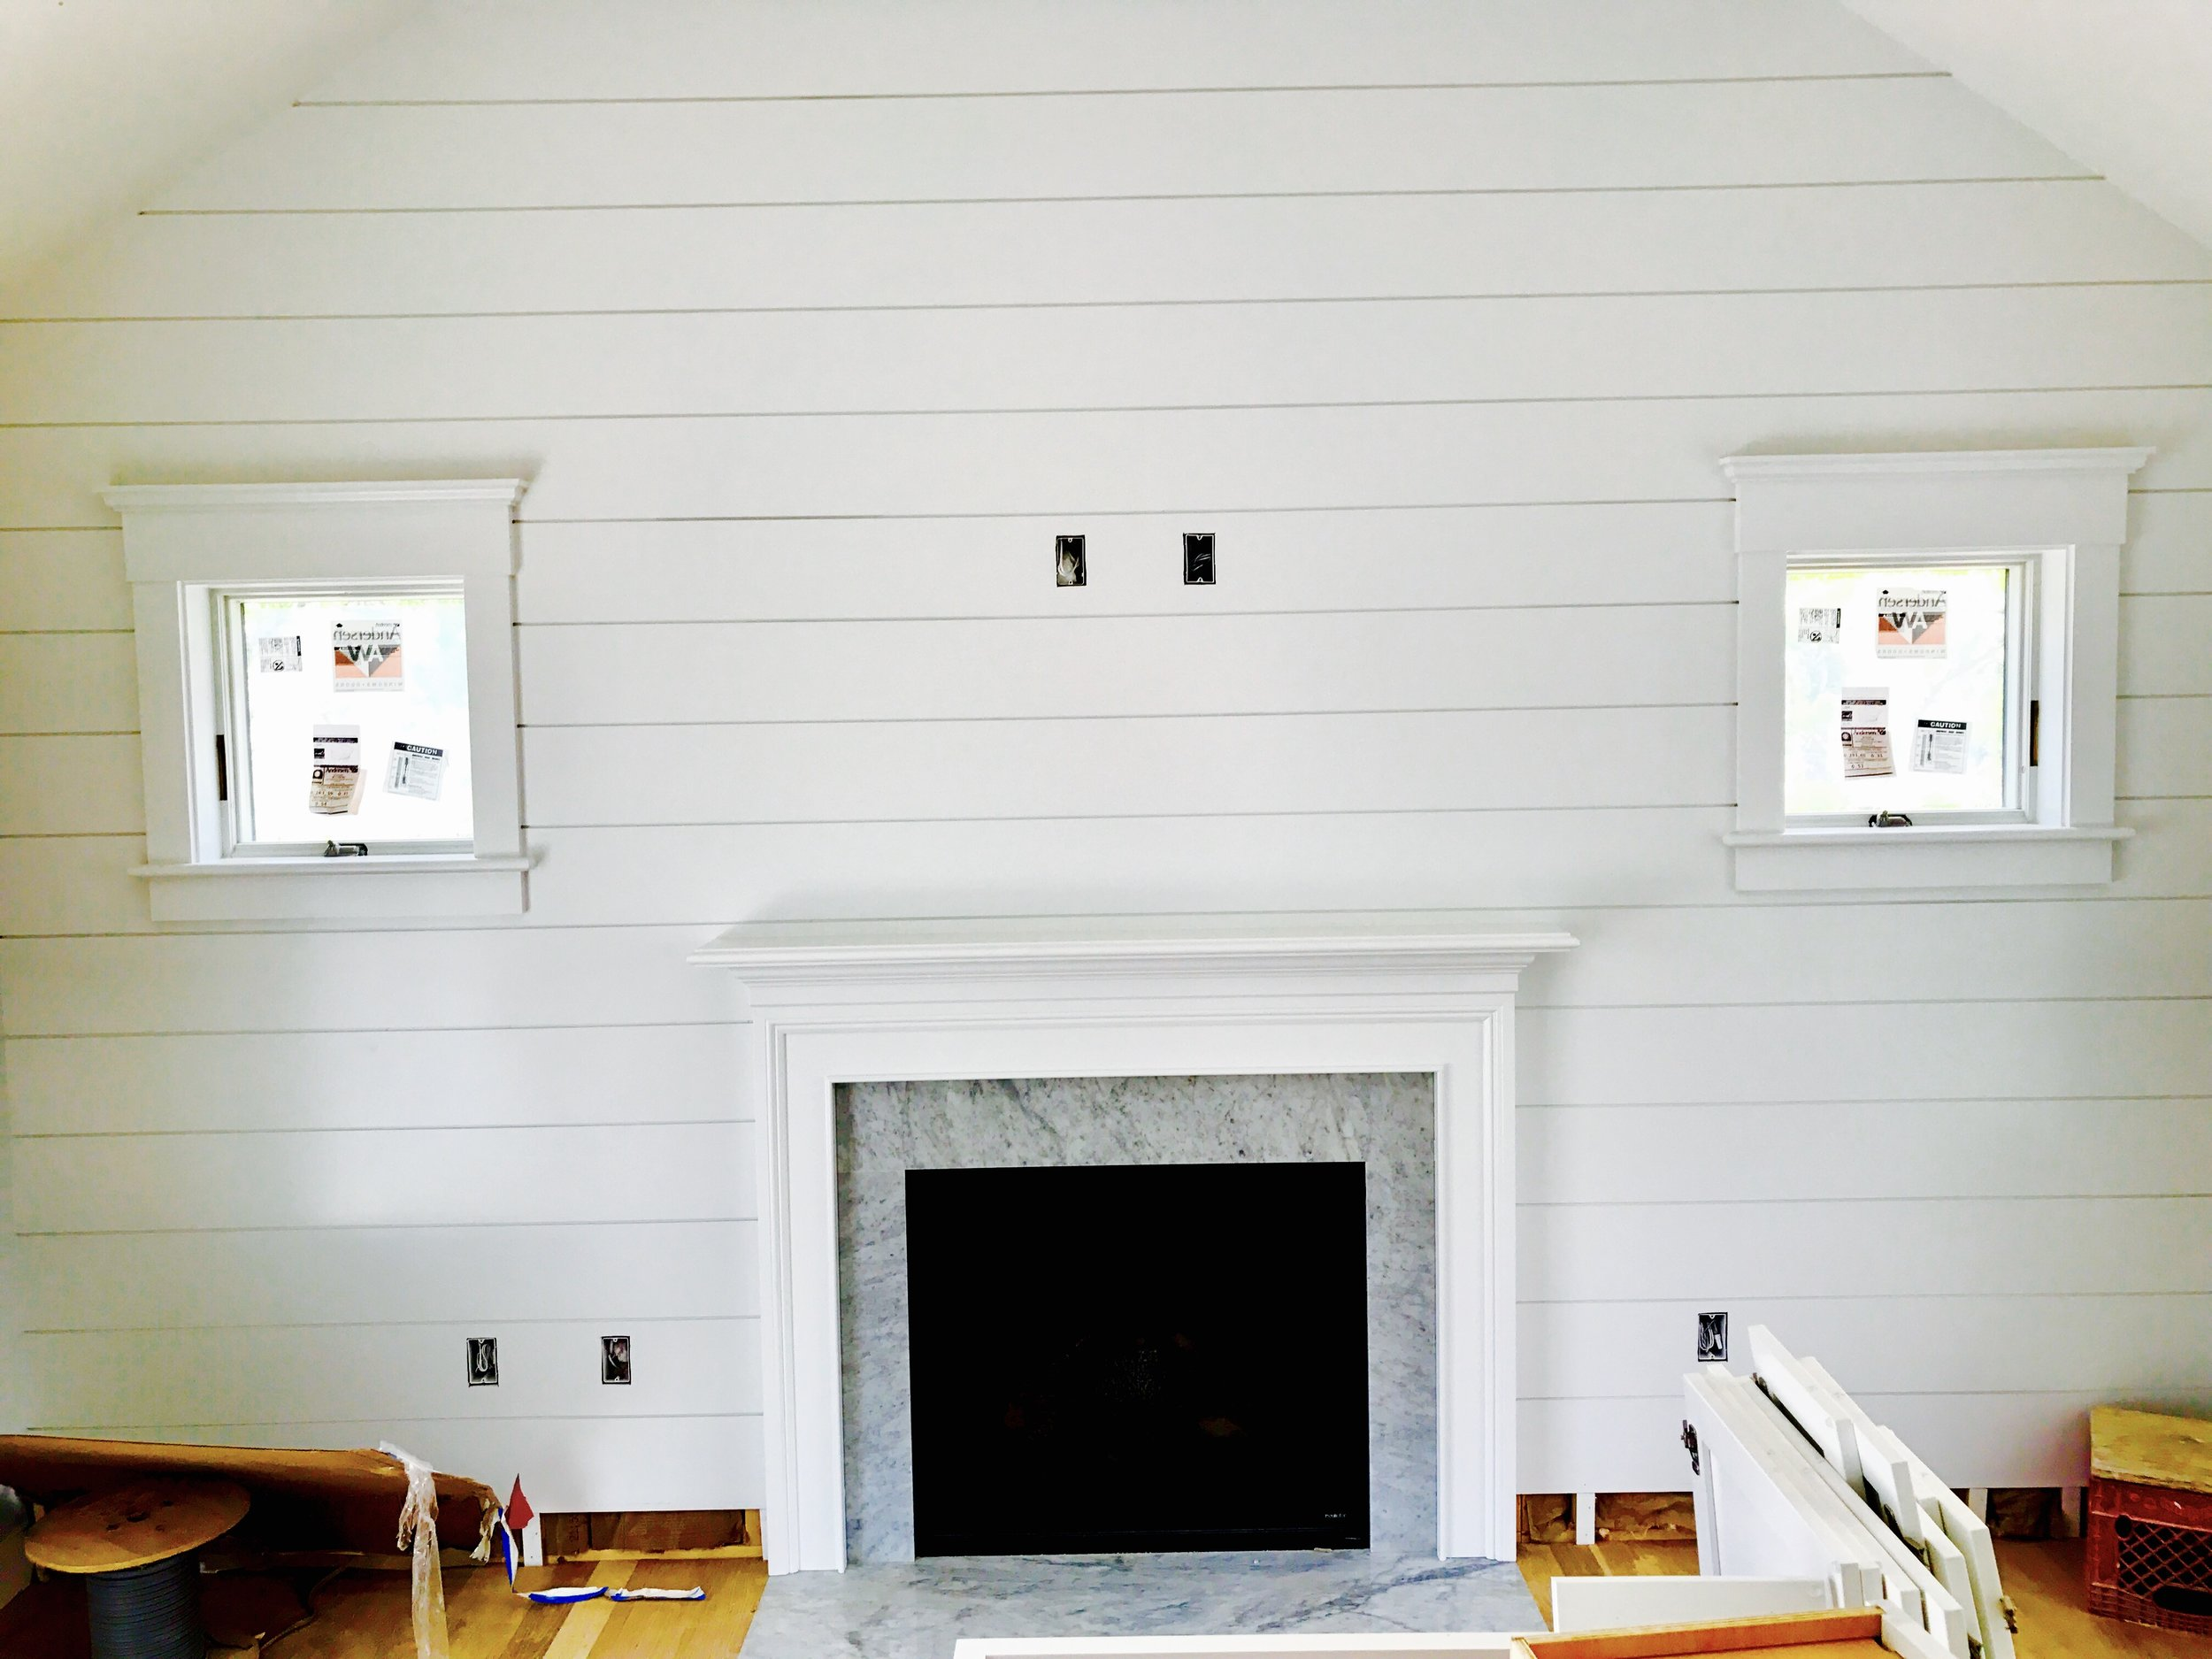 34 Cranberry Shiplap and Fireplace 5-26-18.jpg